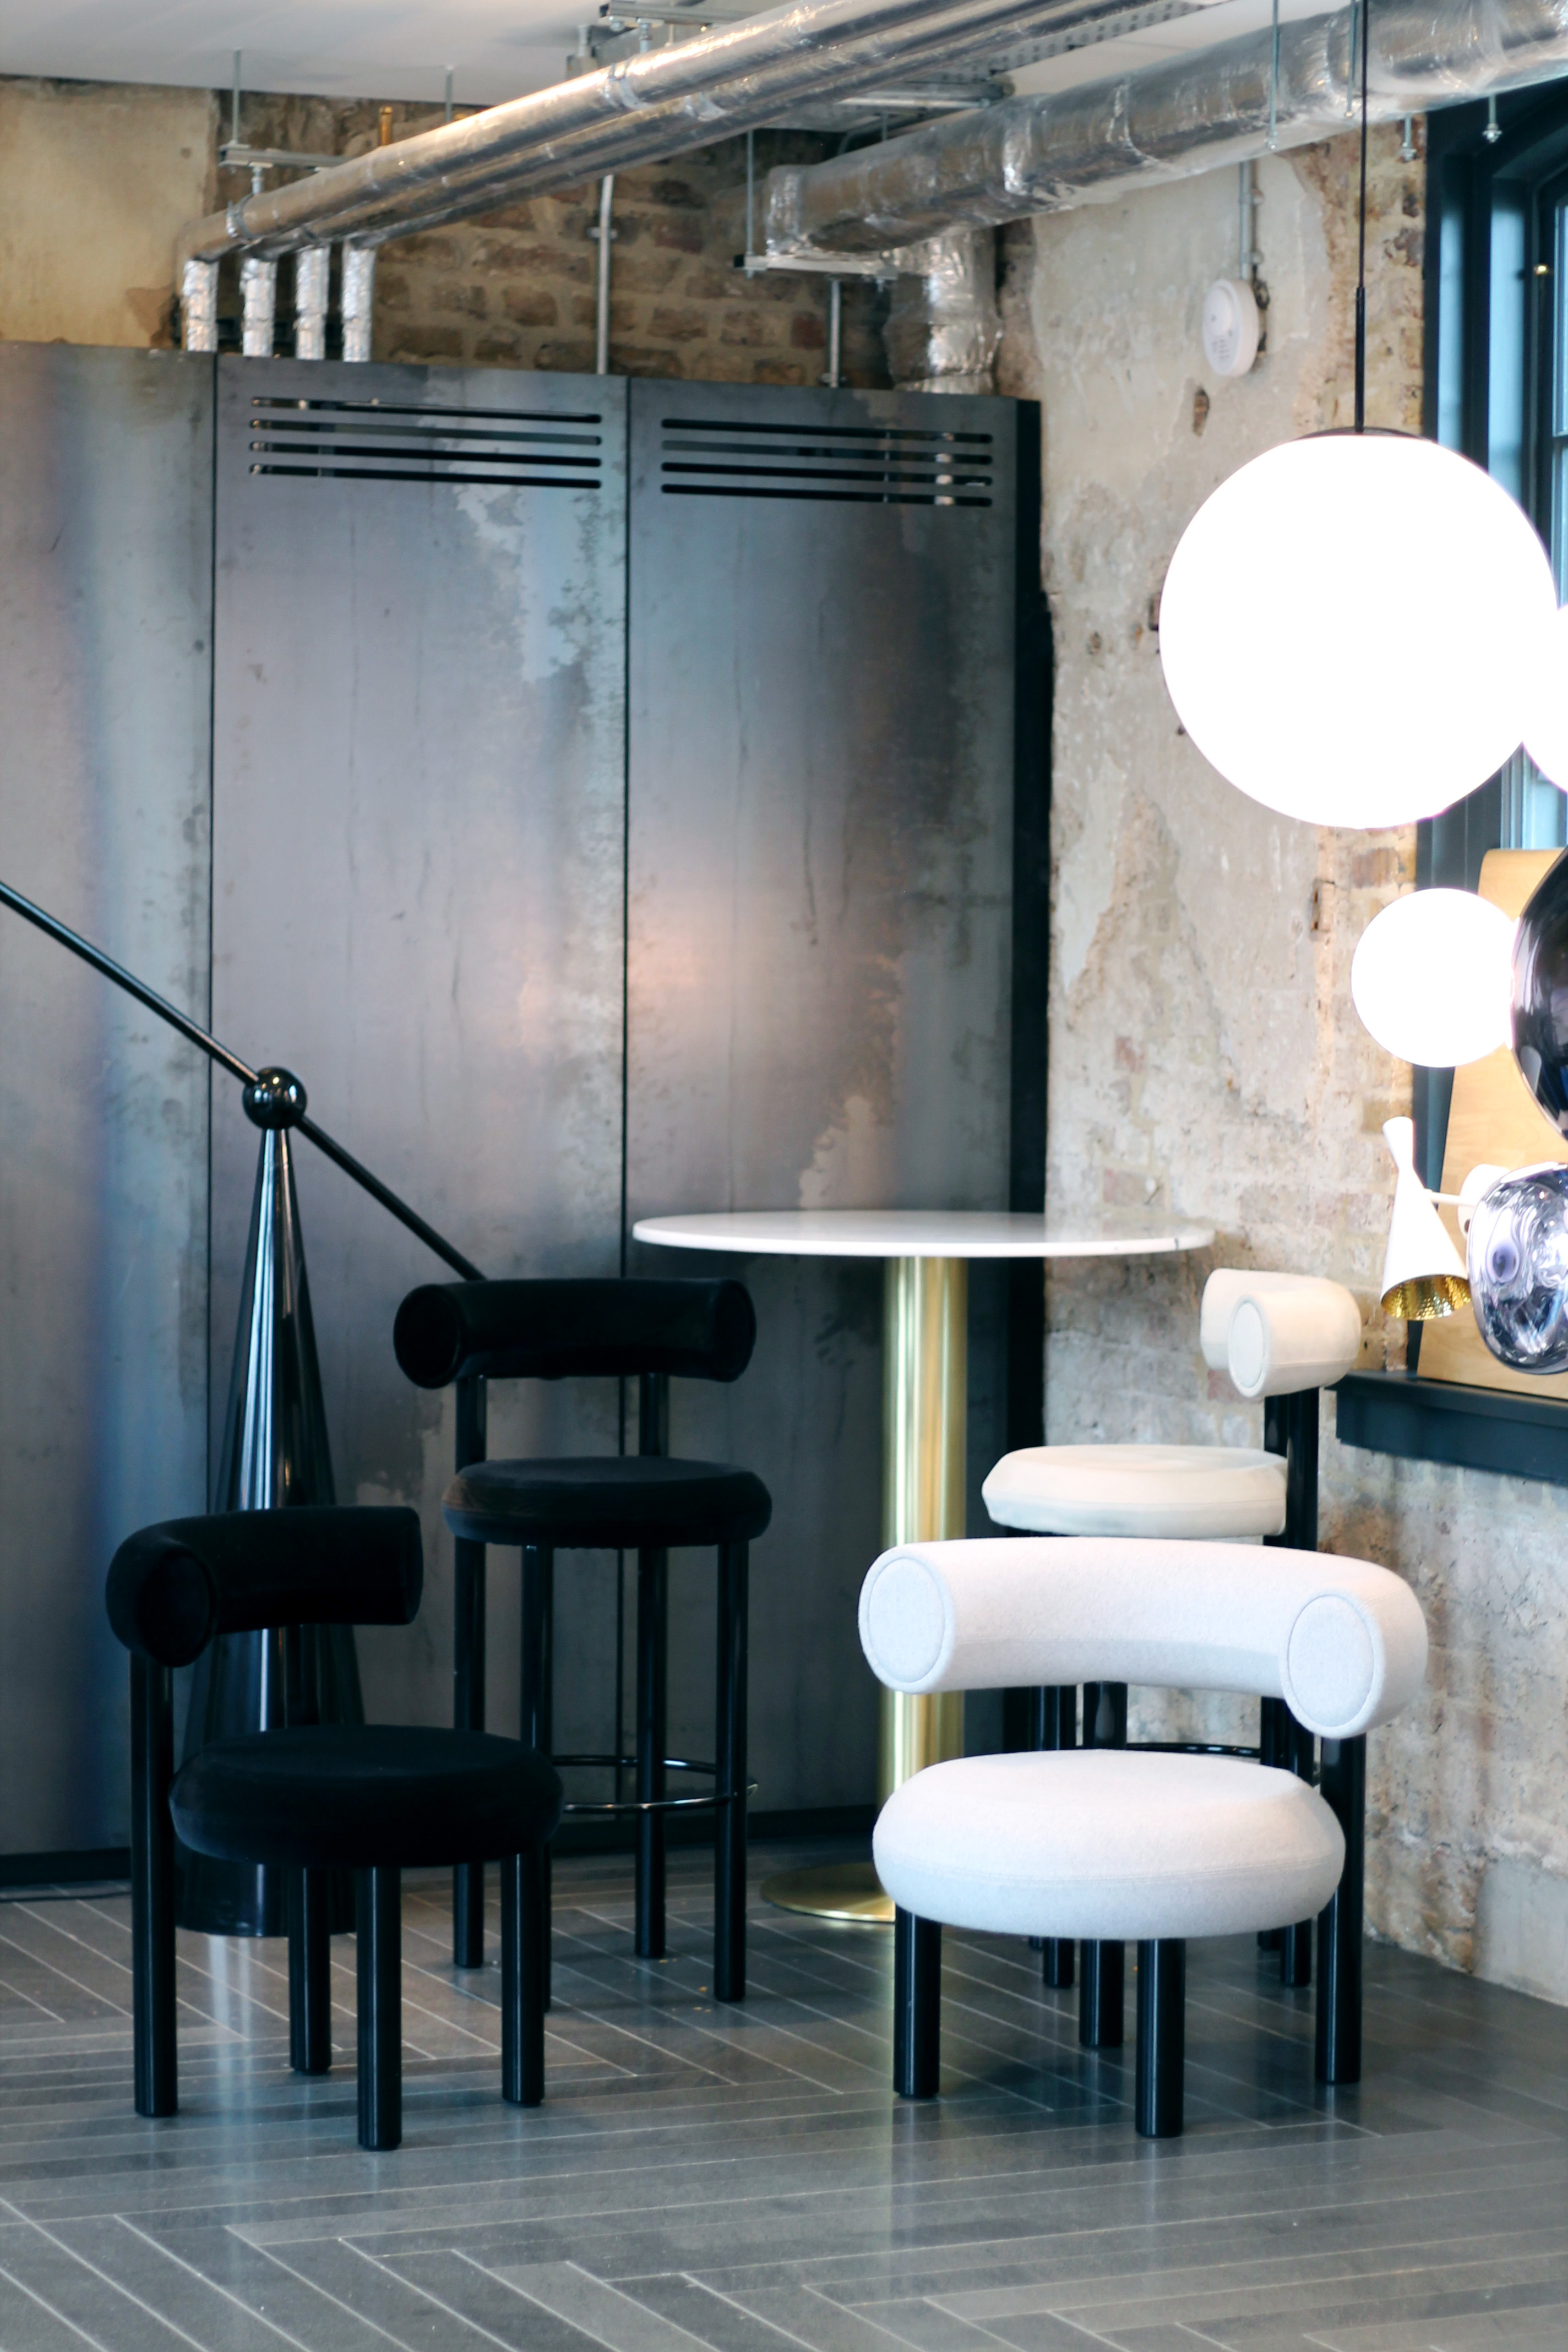 Clippings interior design event in London - Breakfast insights with Tom Dixon